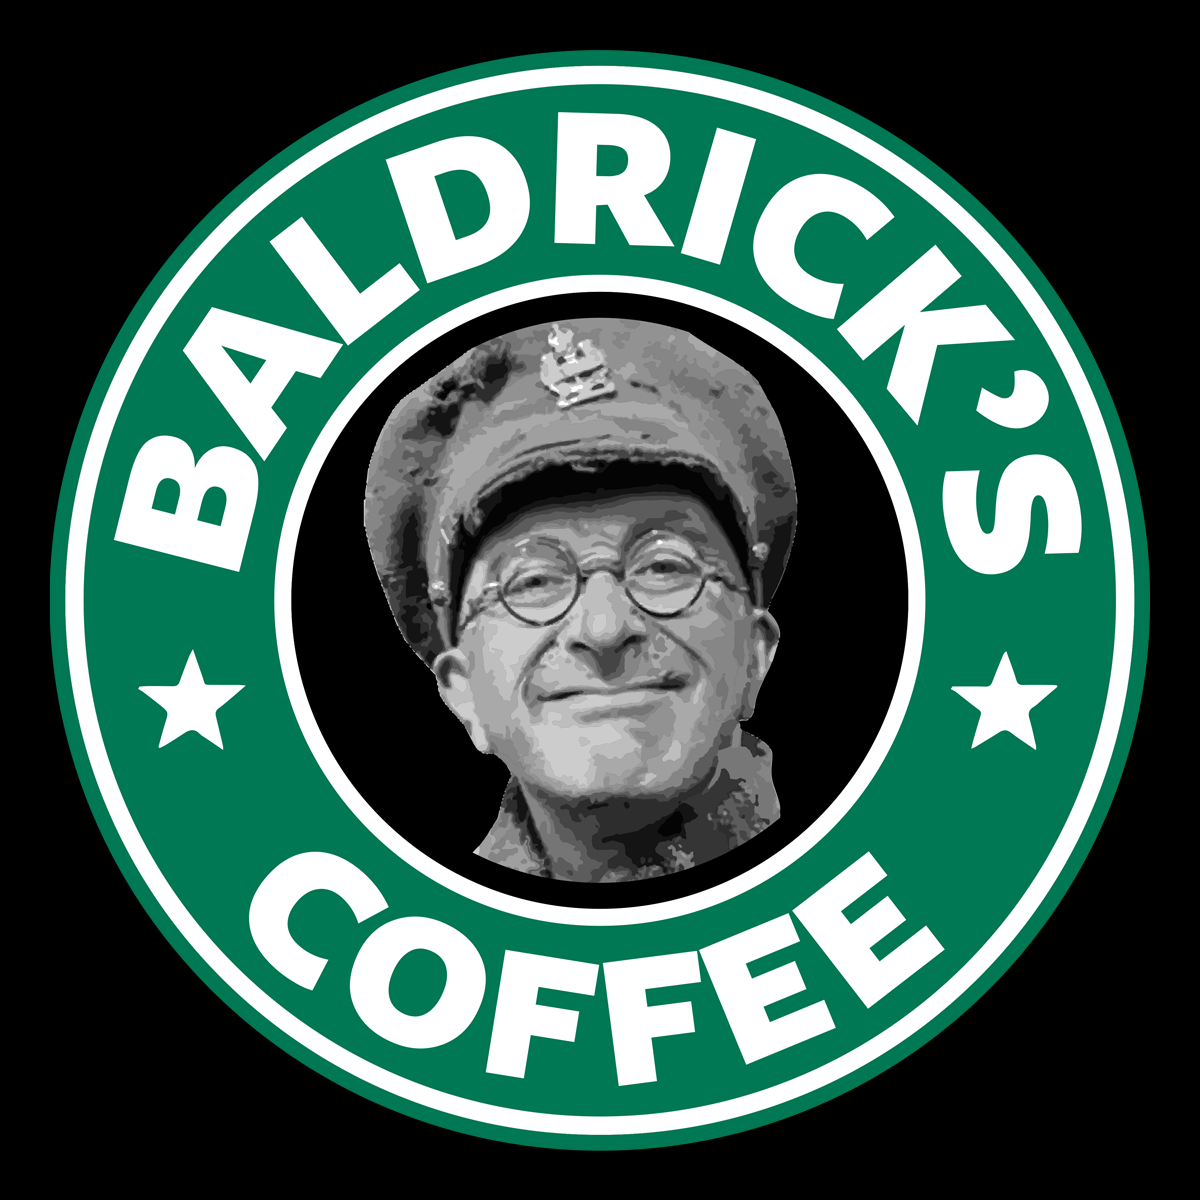 Baldrick's Coffee Unisex T Shirt